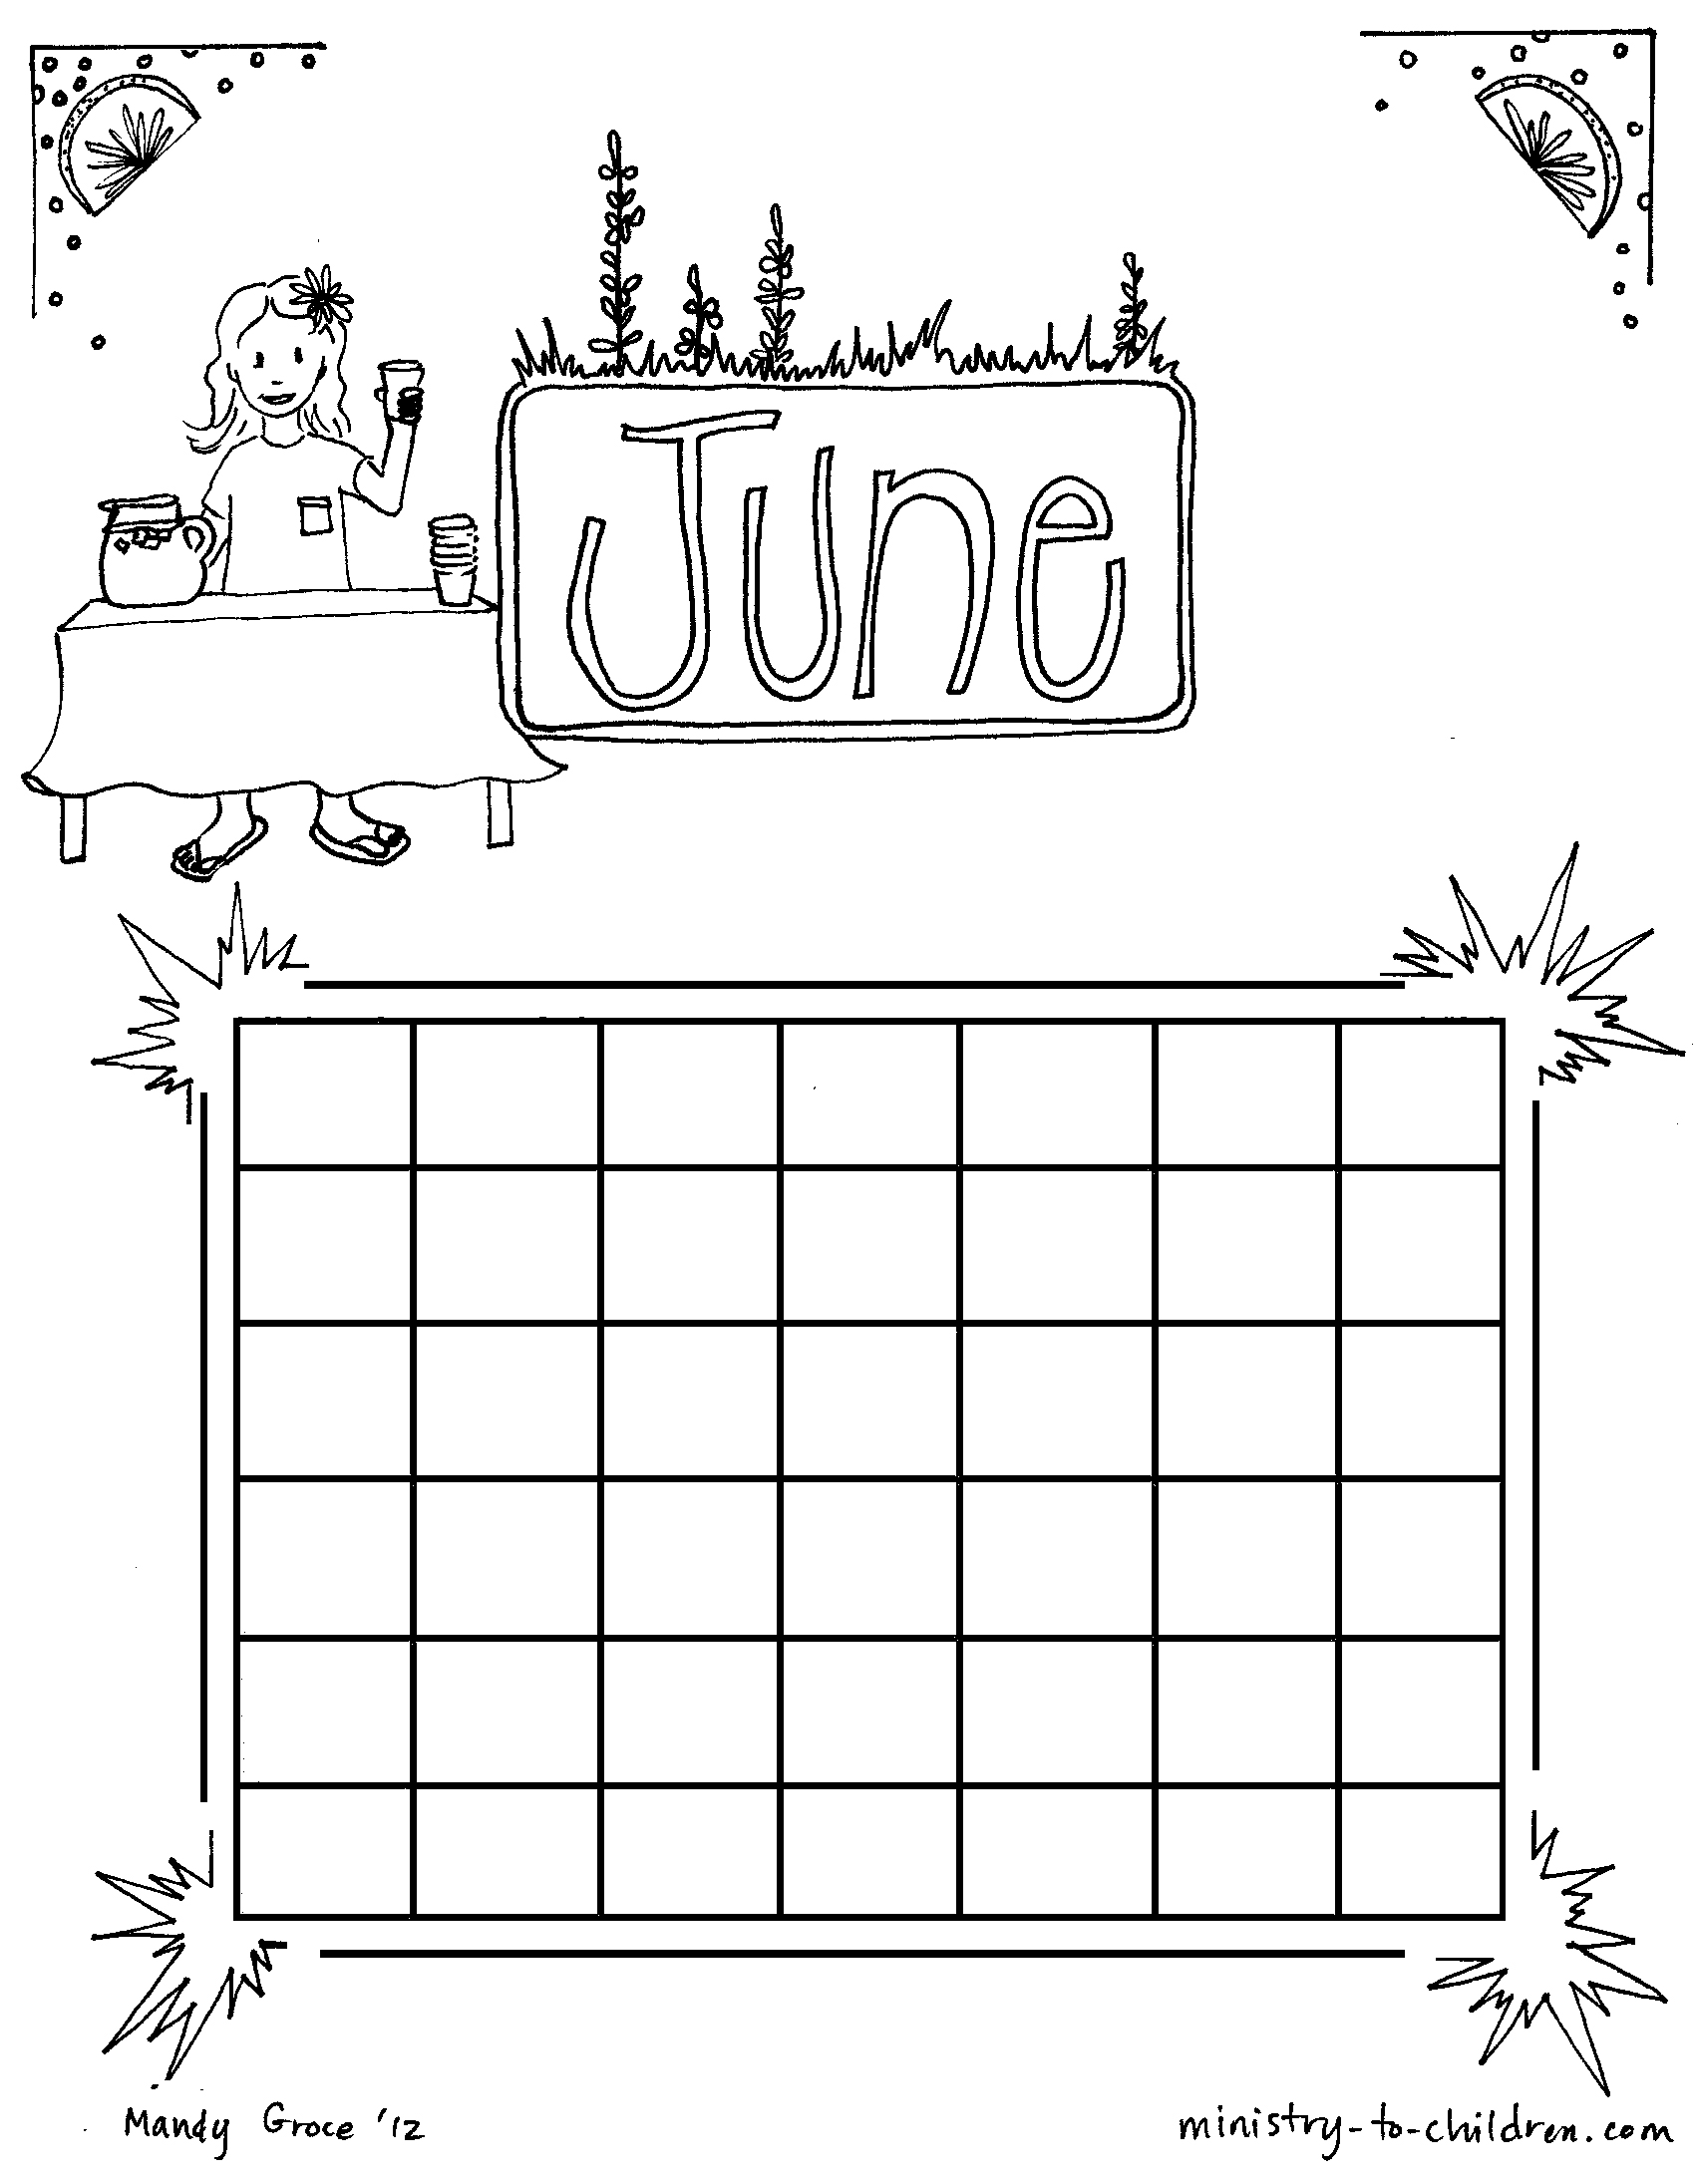 colouring pages for june june coloring pages to download and print for free for colouring june pages